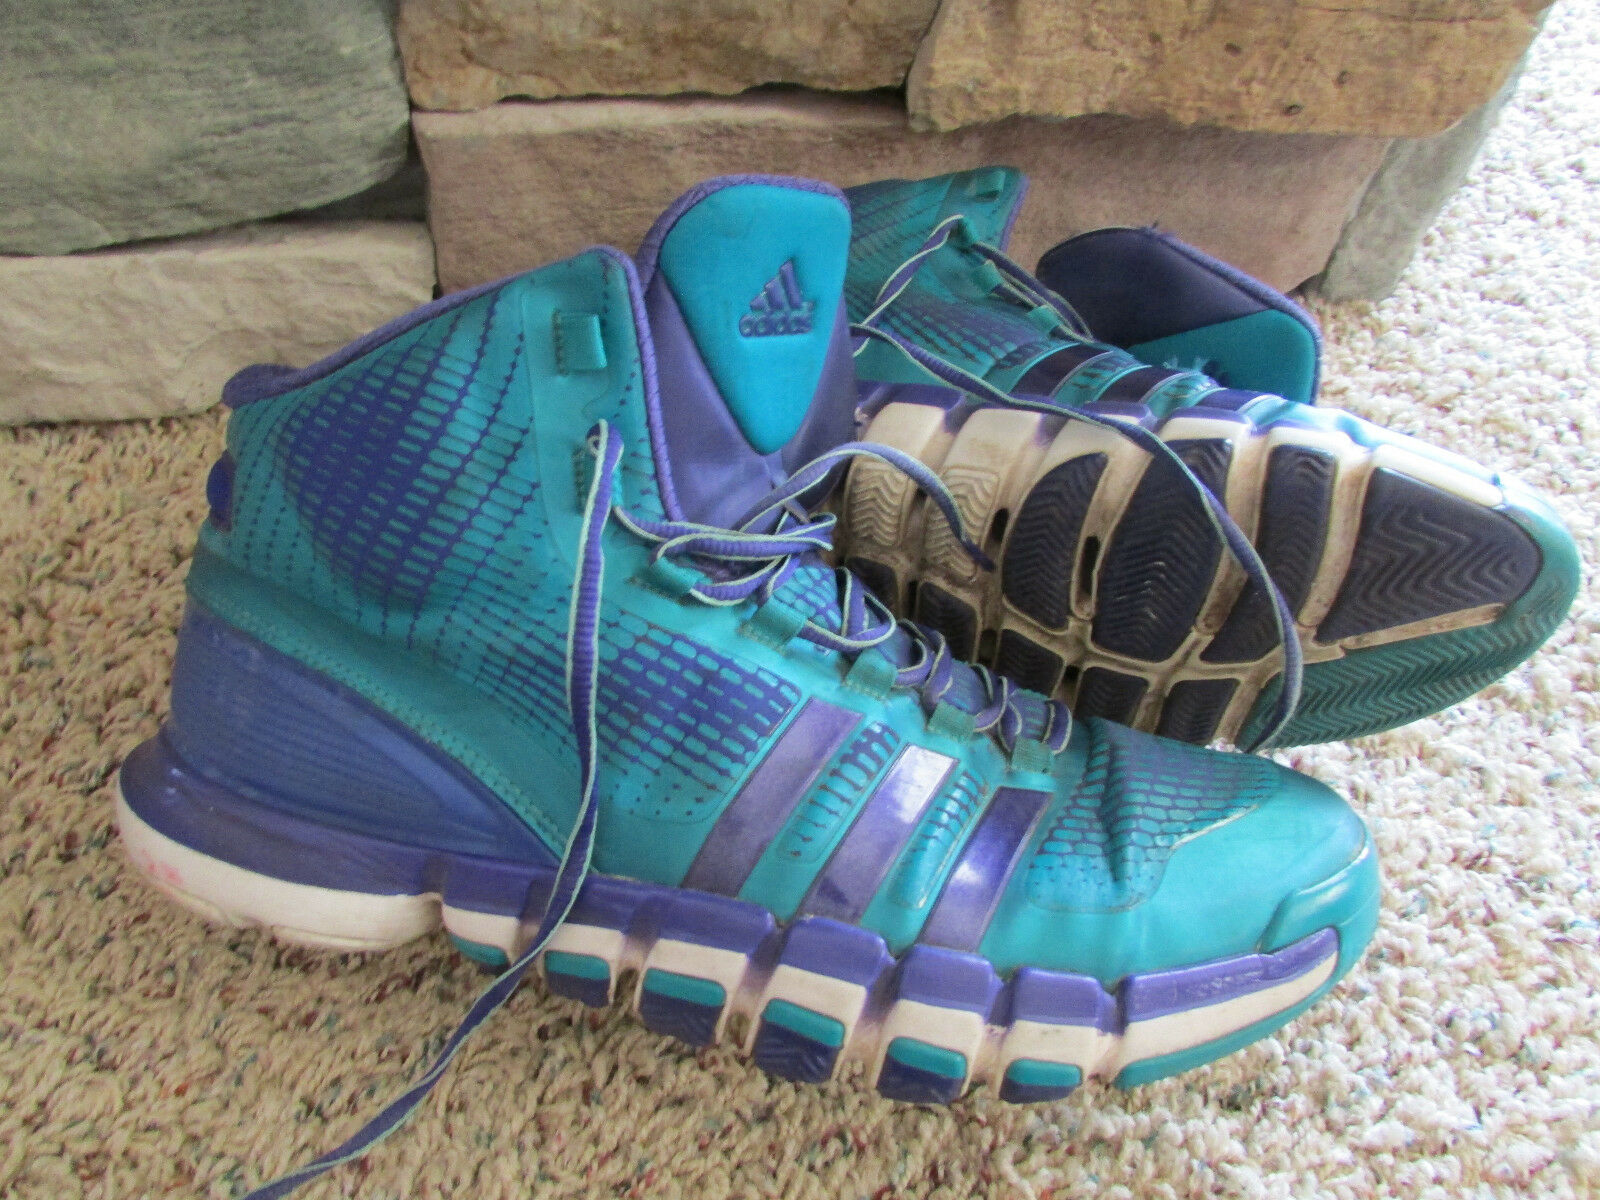 ADIDAS CRAZY QUICK BASKETBALL SHOES SNEAKERS MENS 11.5 Q33303 PURPLE TEAL